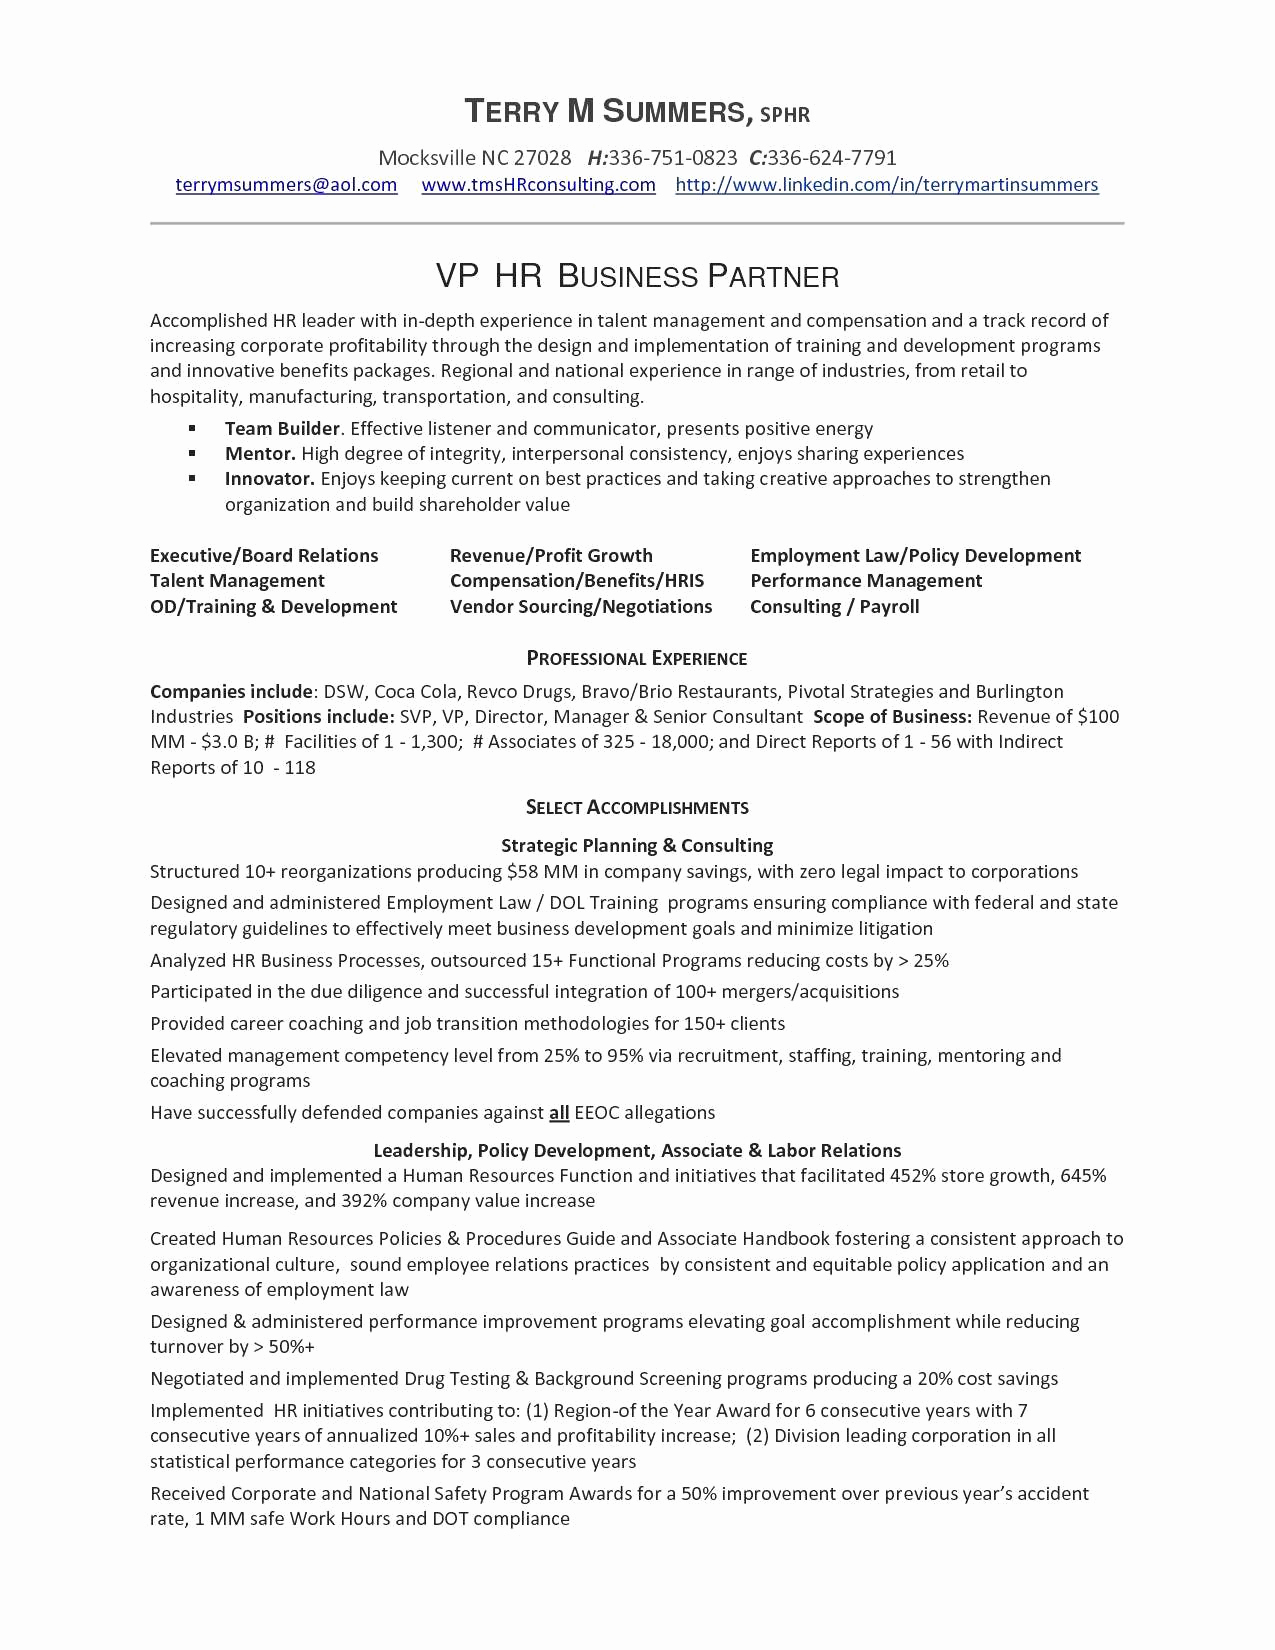 libreoffice letter template example-Cover Letter Template Libreoffice 30 Lovely Resume and Cover Letter Examples 16-b